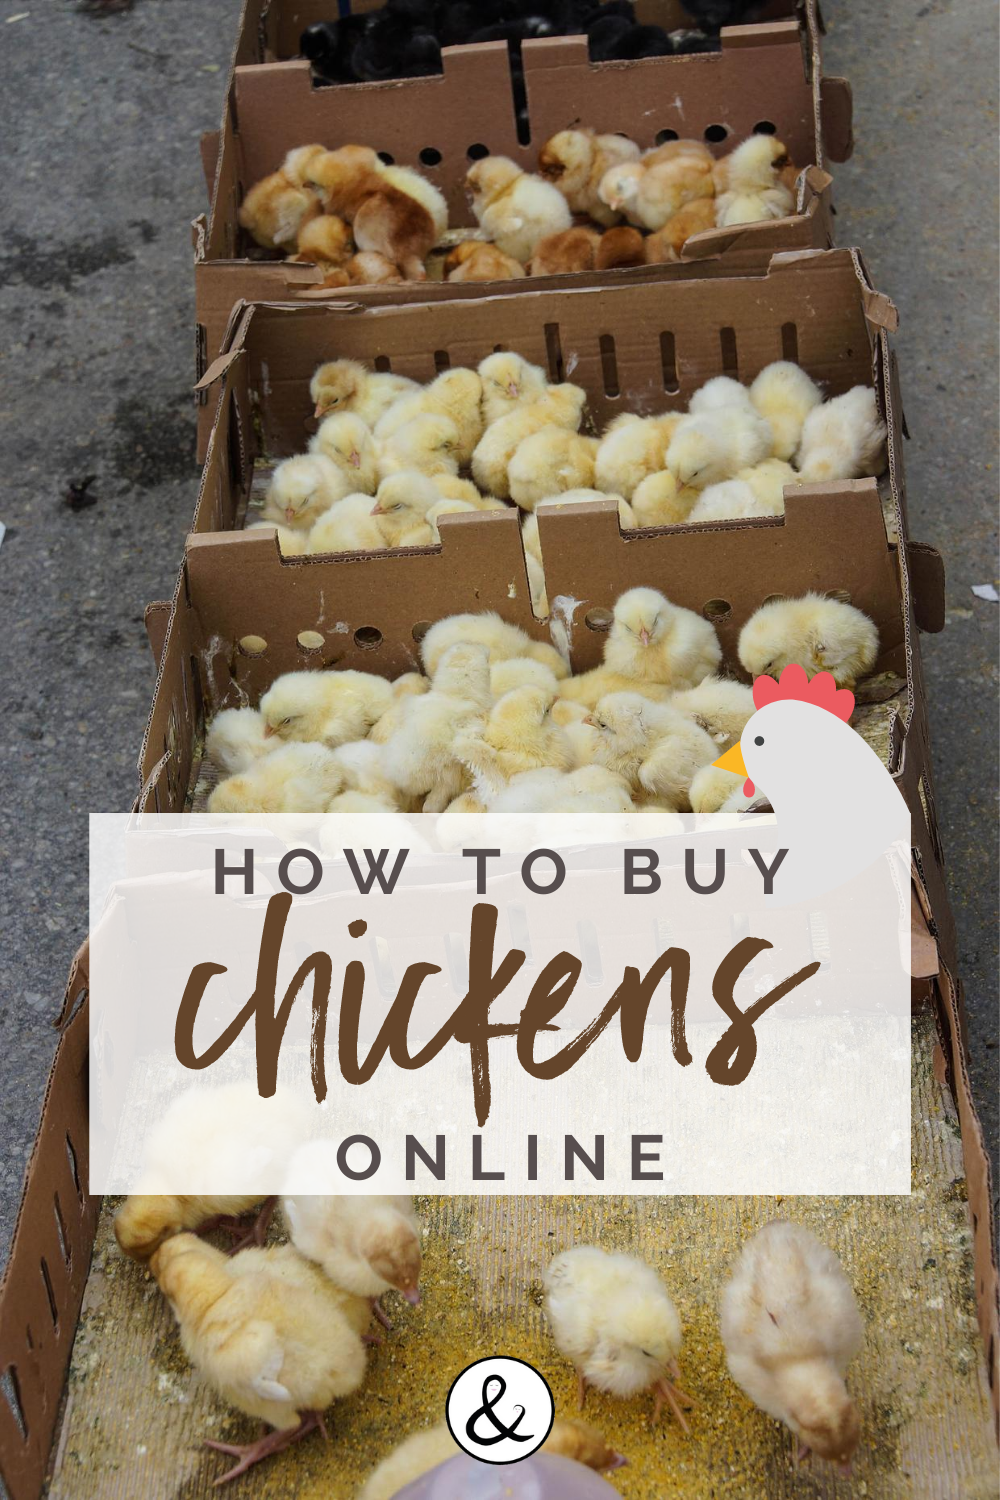 How to Buy Chickens Online